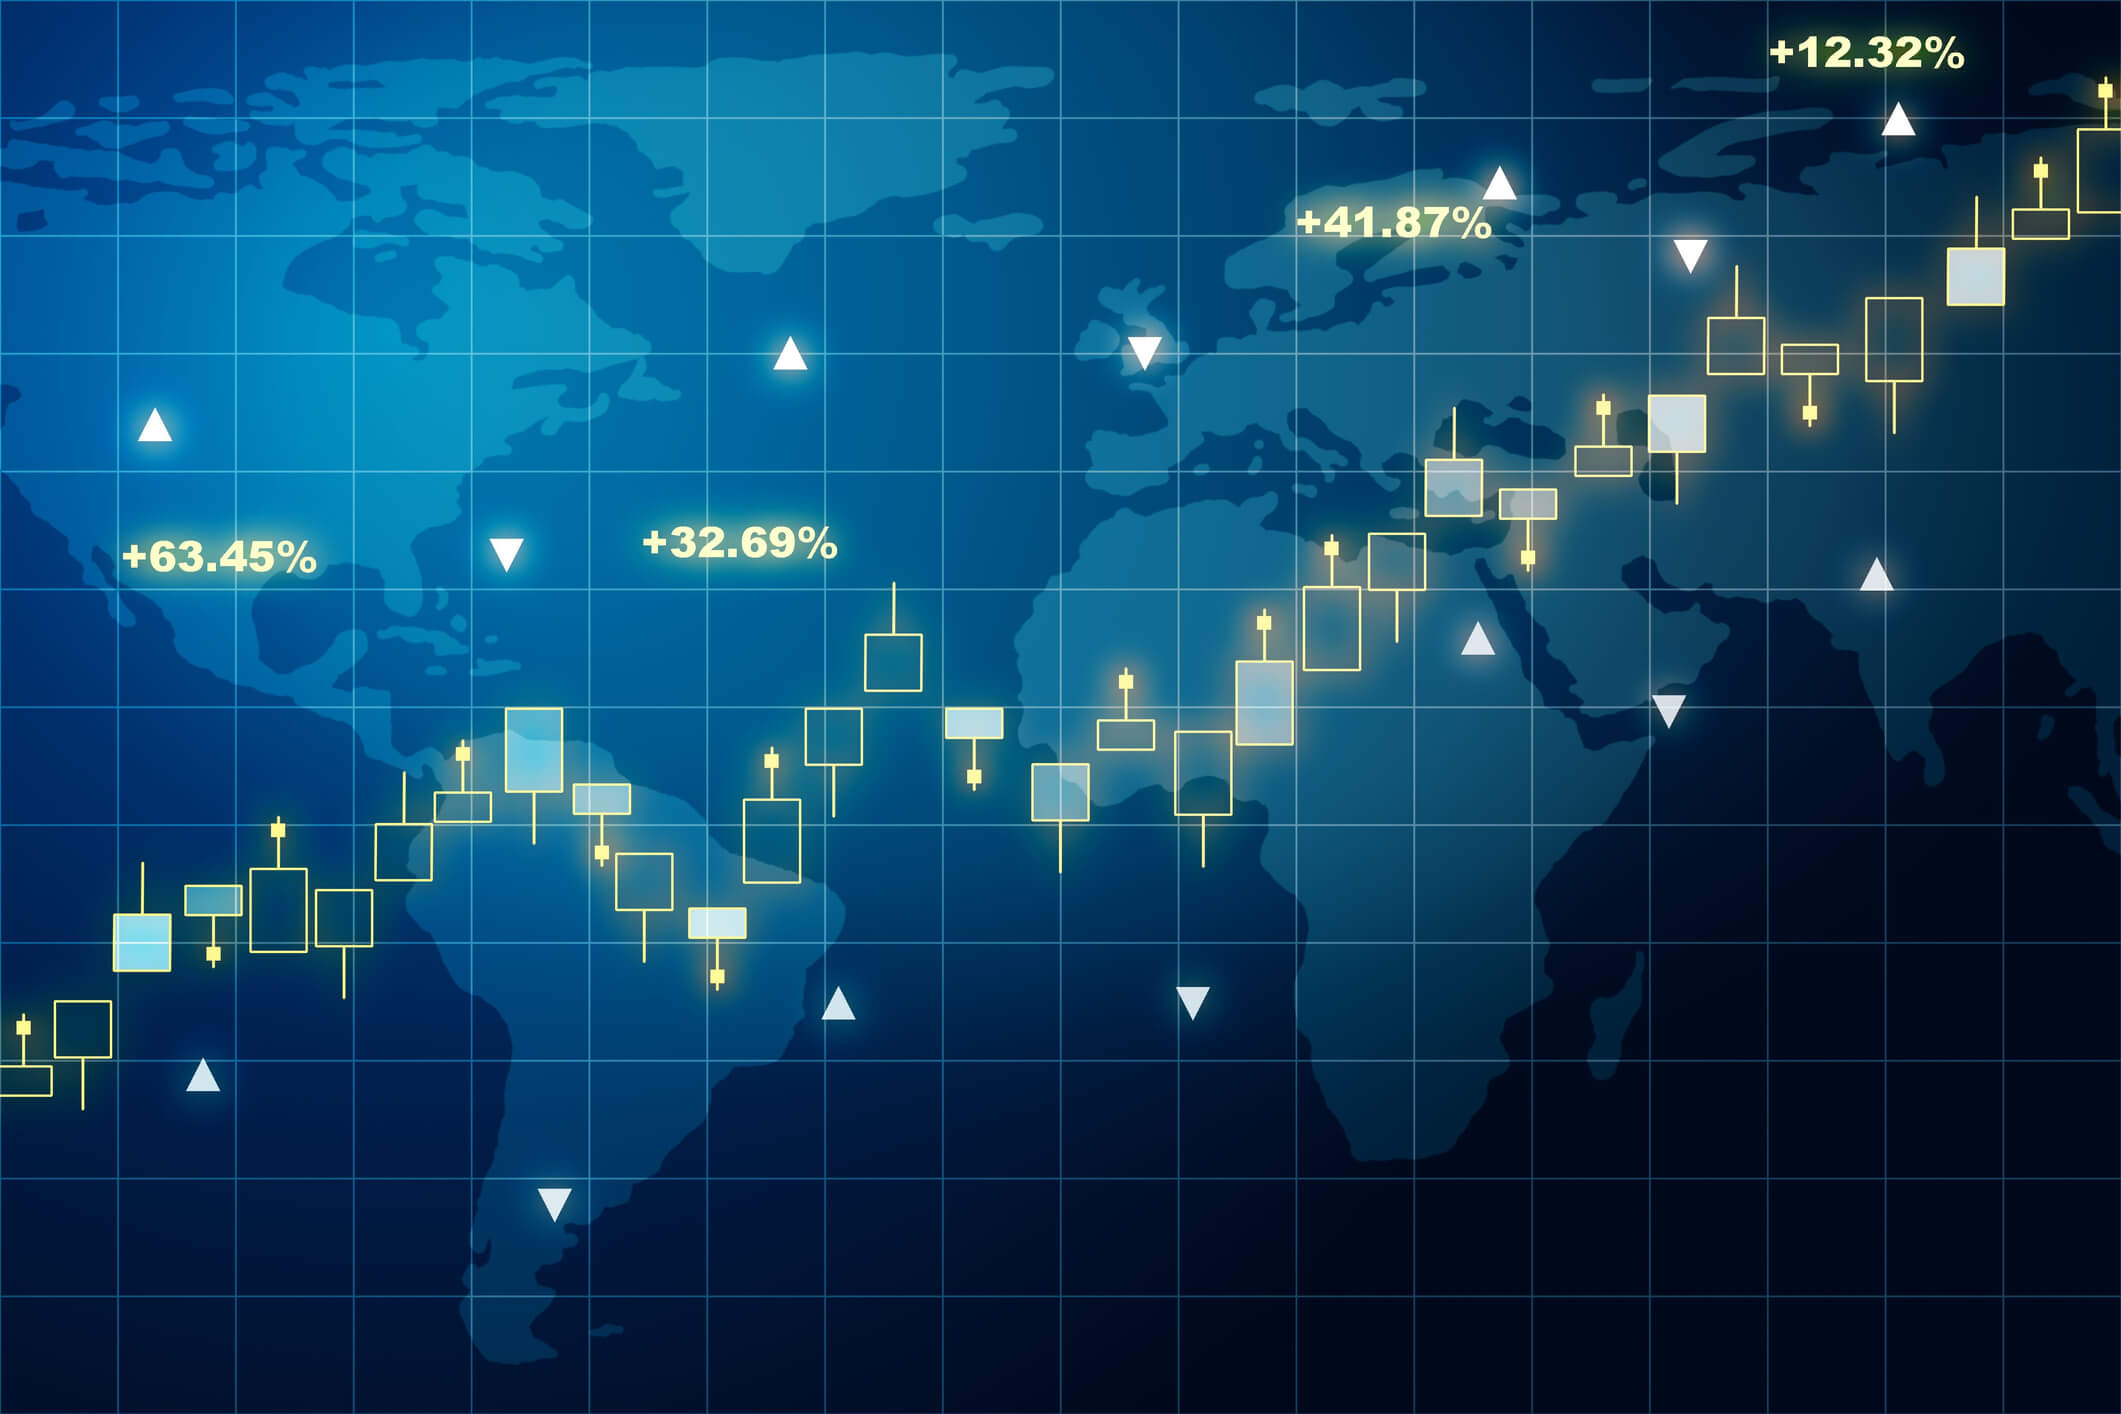 Global statistics across multiple continents to signify insider-trading ring.